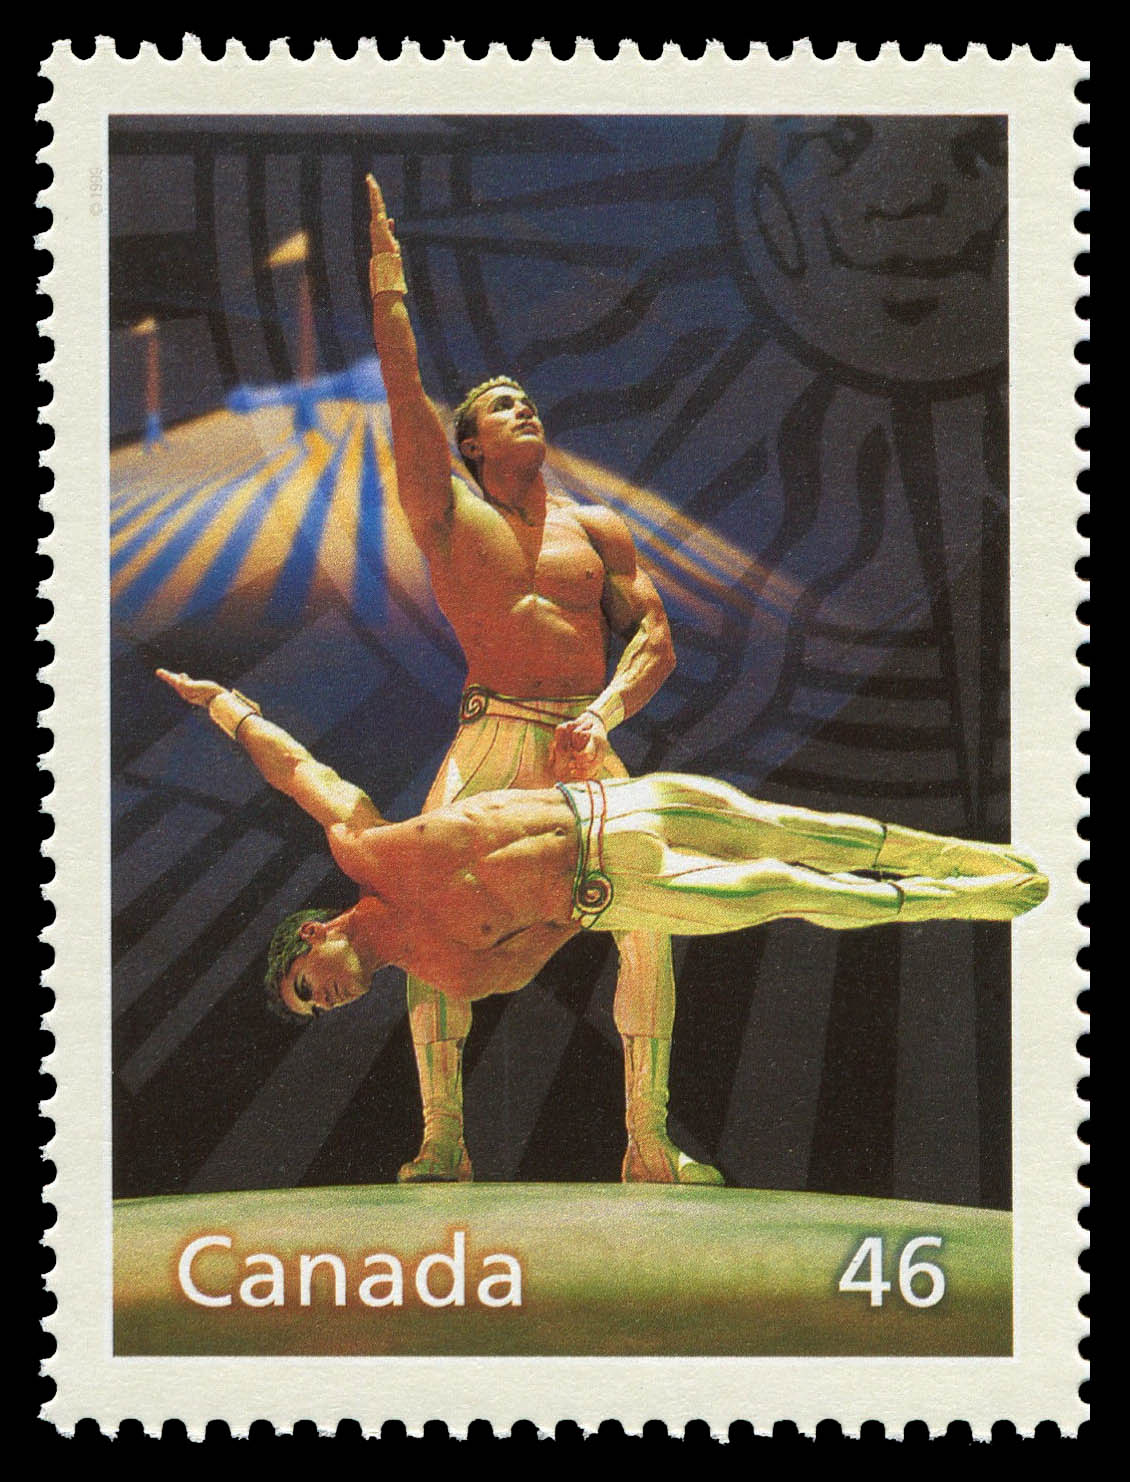 Cirque du Soleil: A World of Fun Canada Postage Stamp